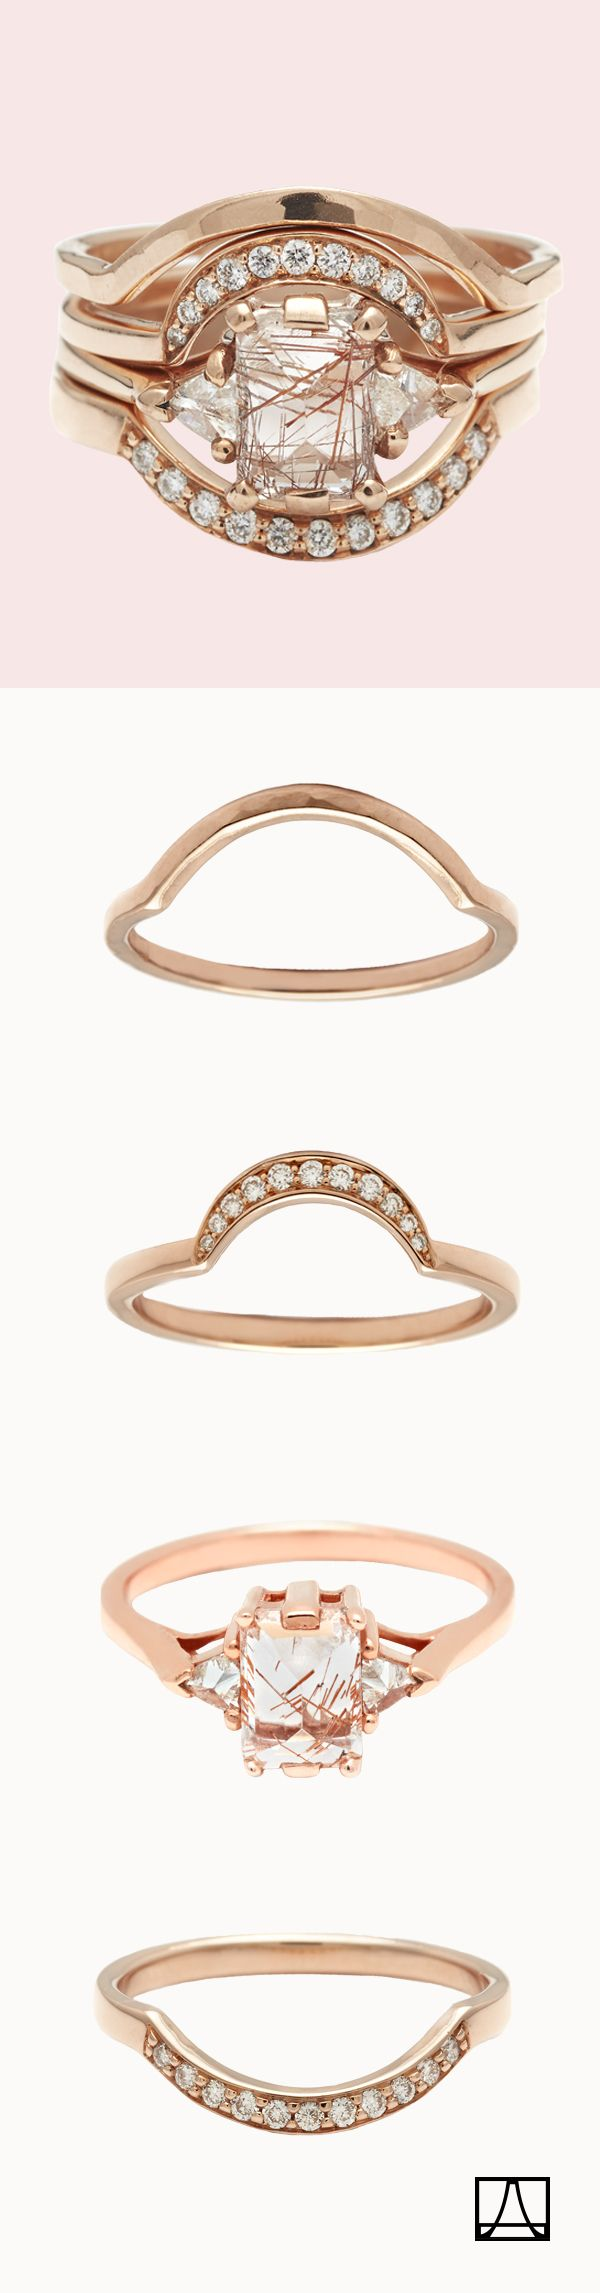 Rose gold Bea ring in copper rutilated quartz and diamonds, haloed with a suite of curved bands in rose gold and diamond pavé.